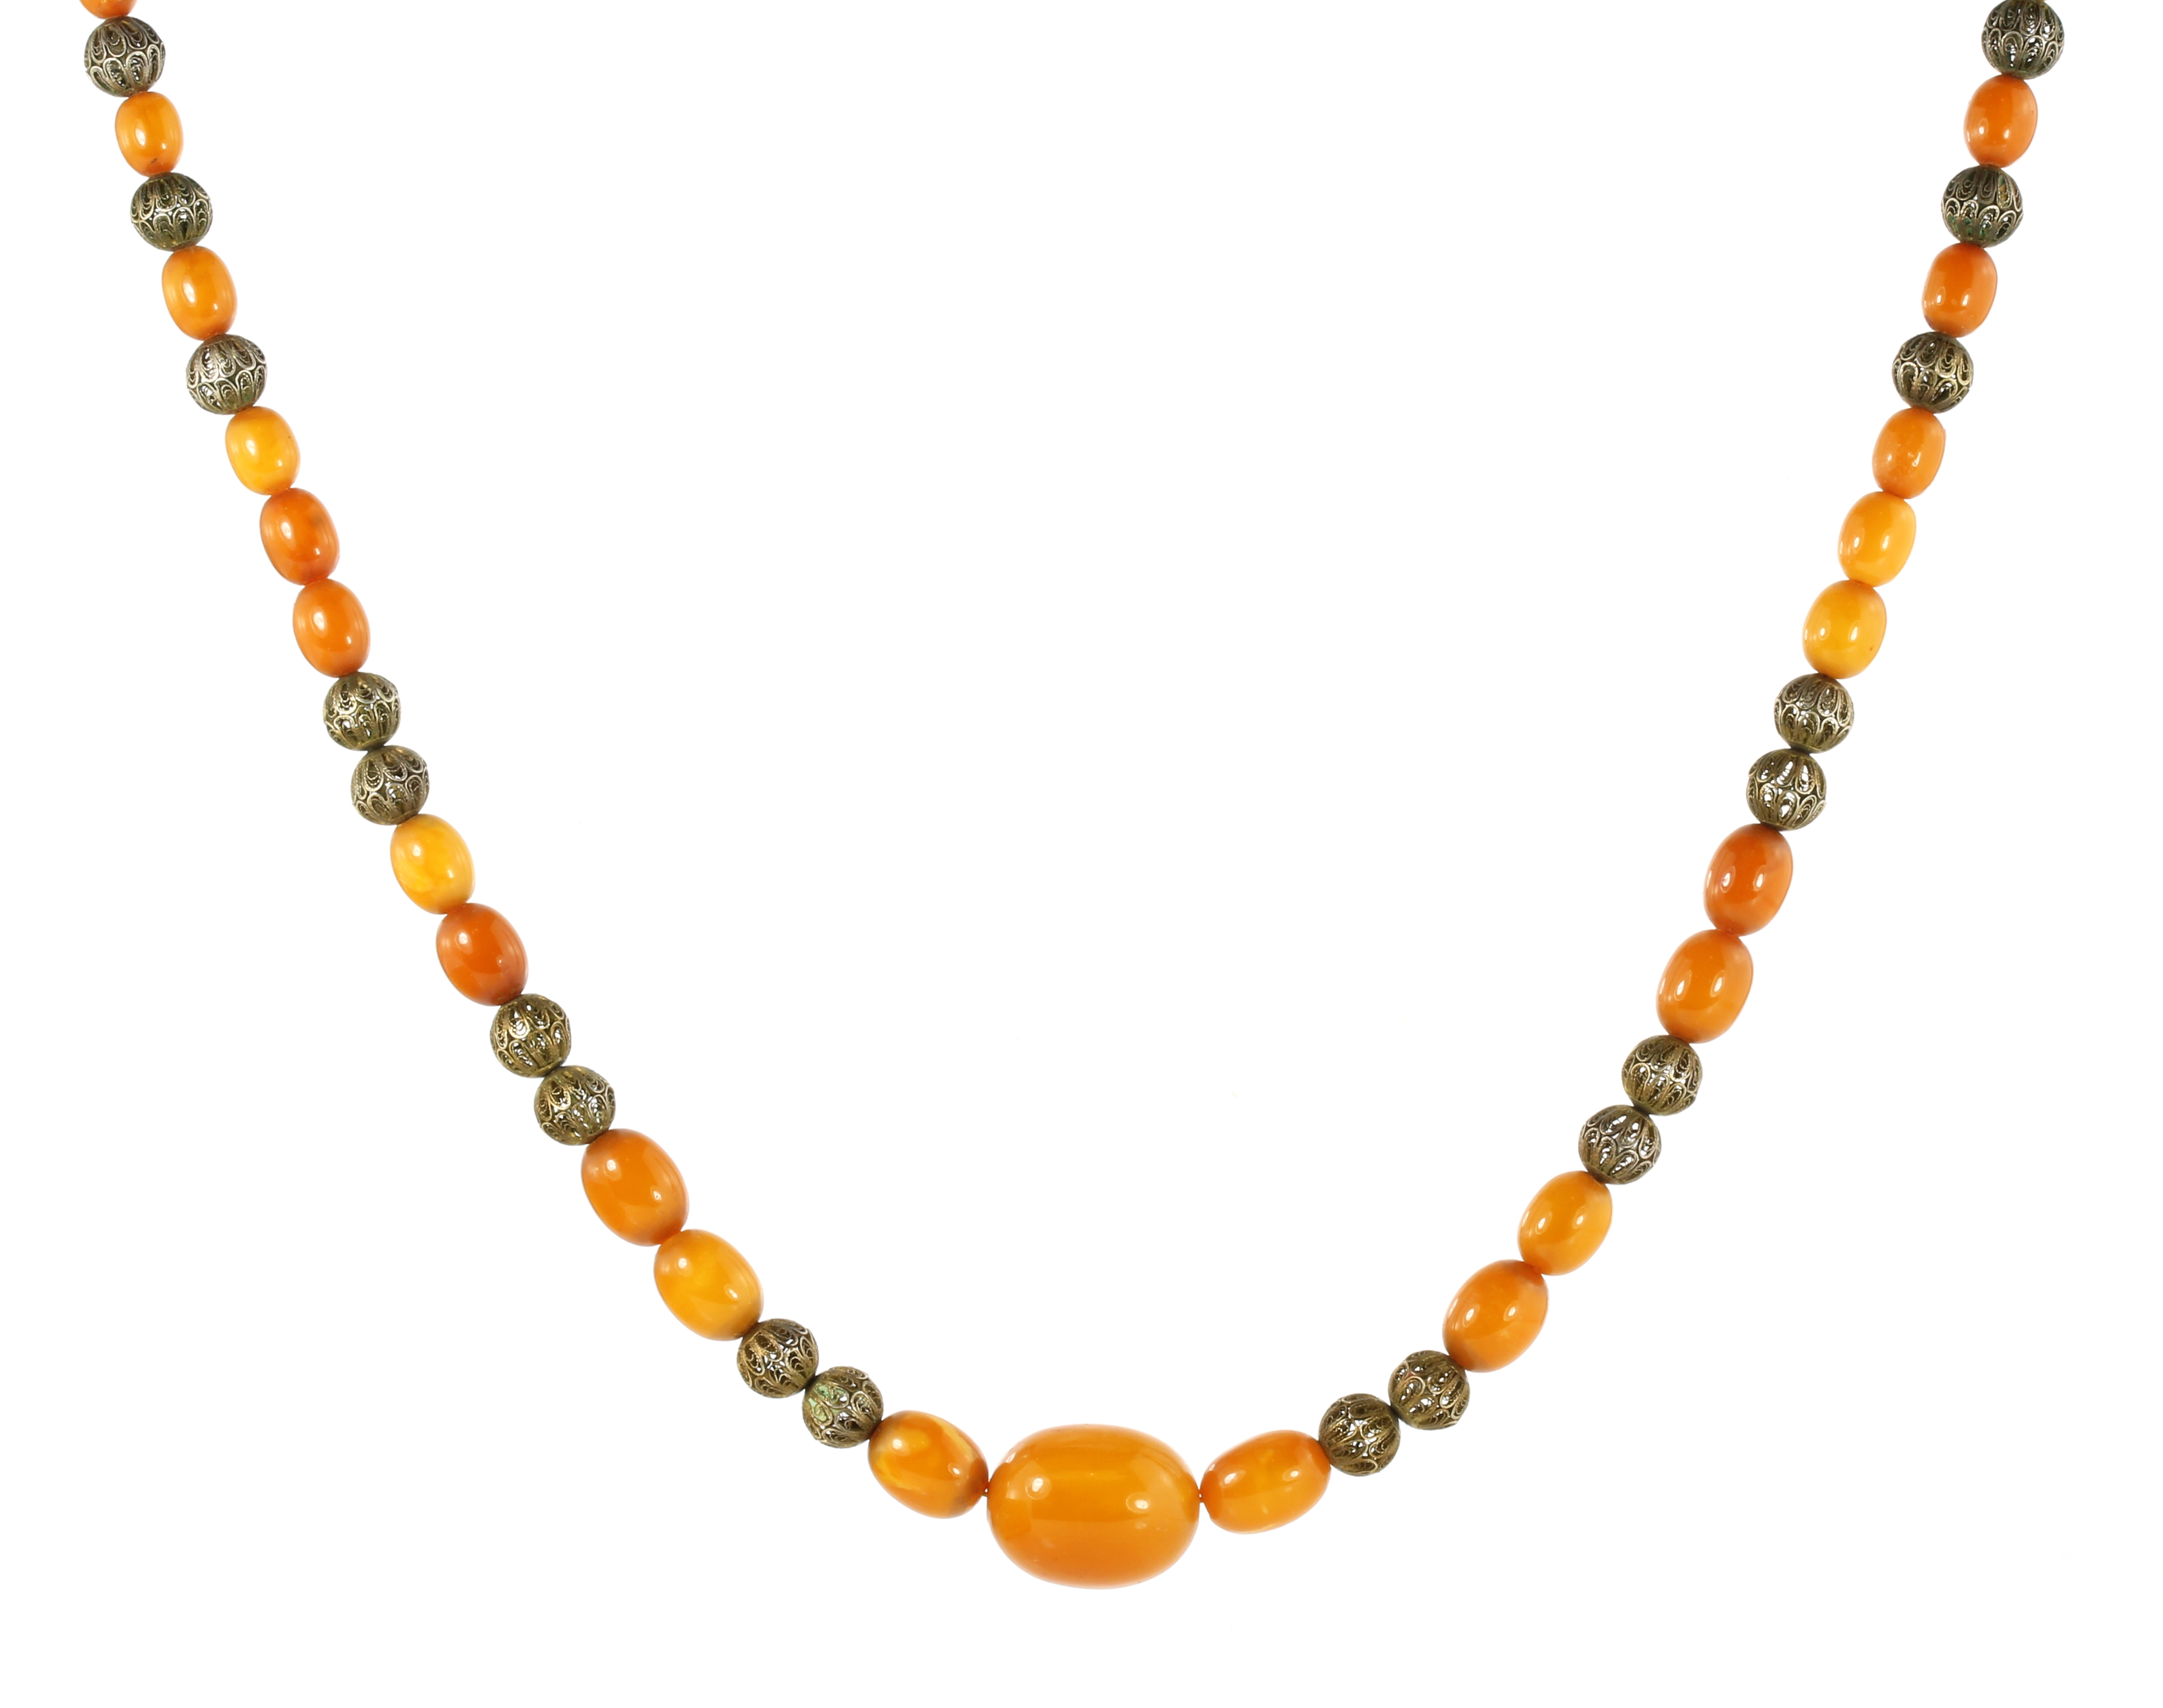 AN ANTIQUE NATURAL AMBER BEAD NECKLACE comprising a single row of forty-one graduated polished